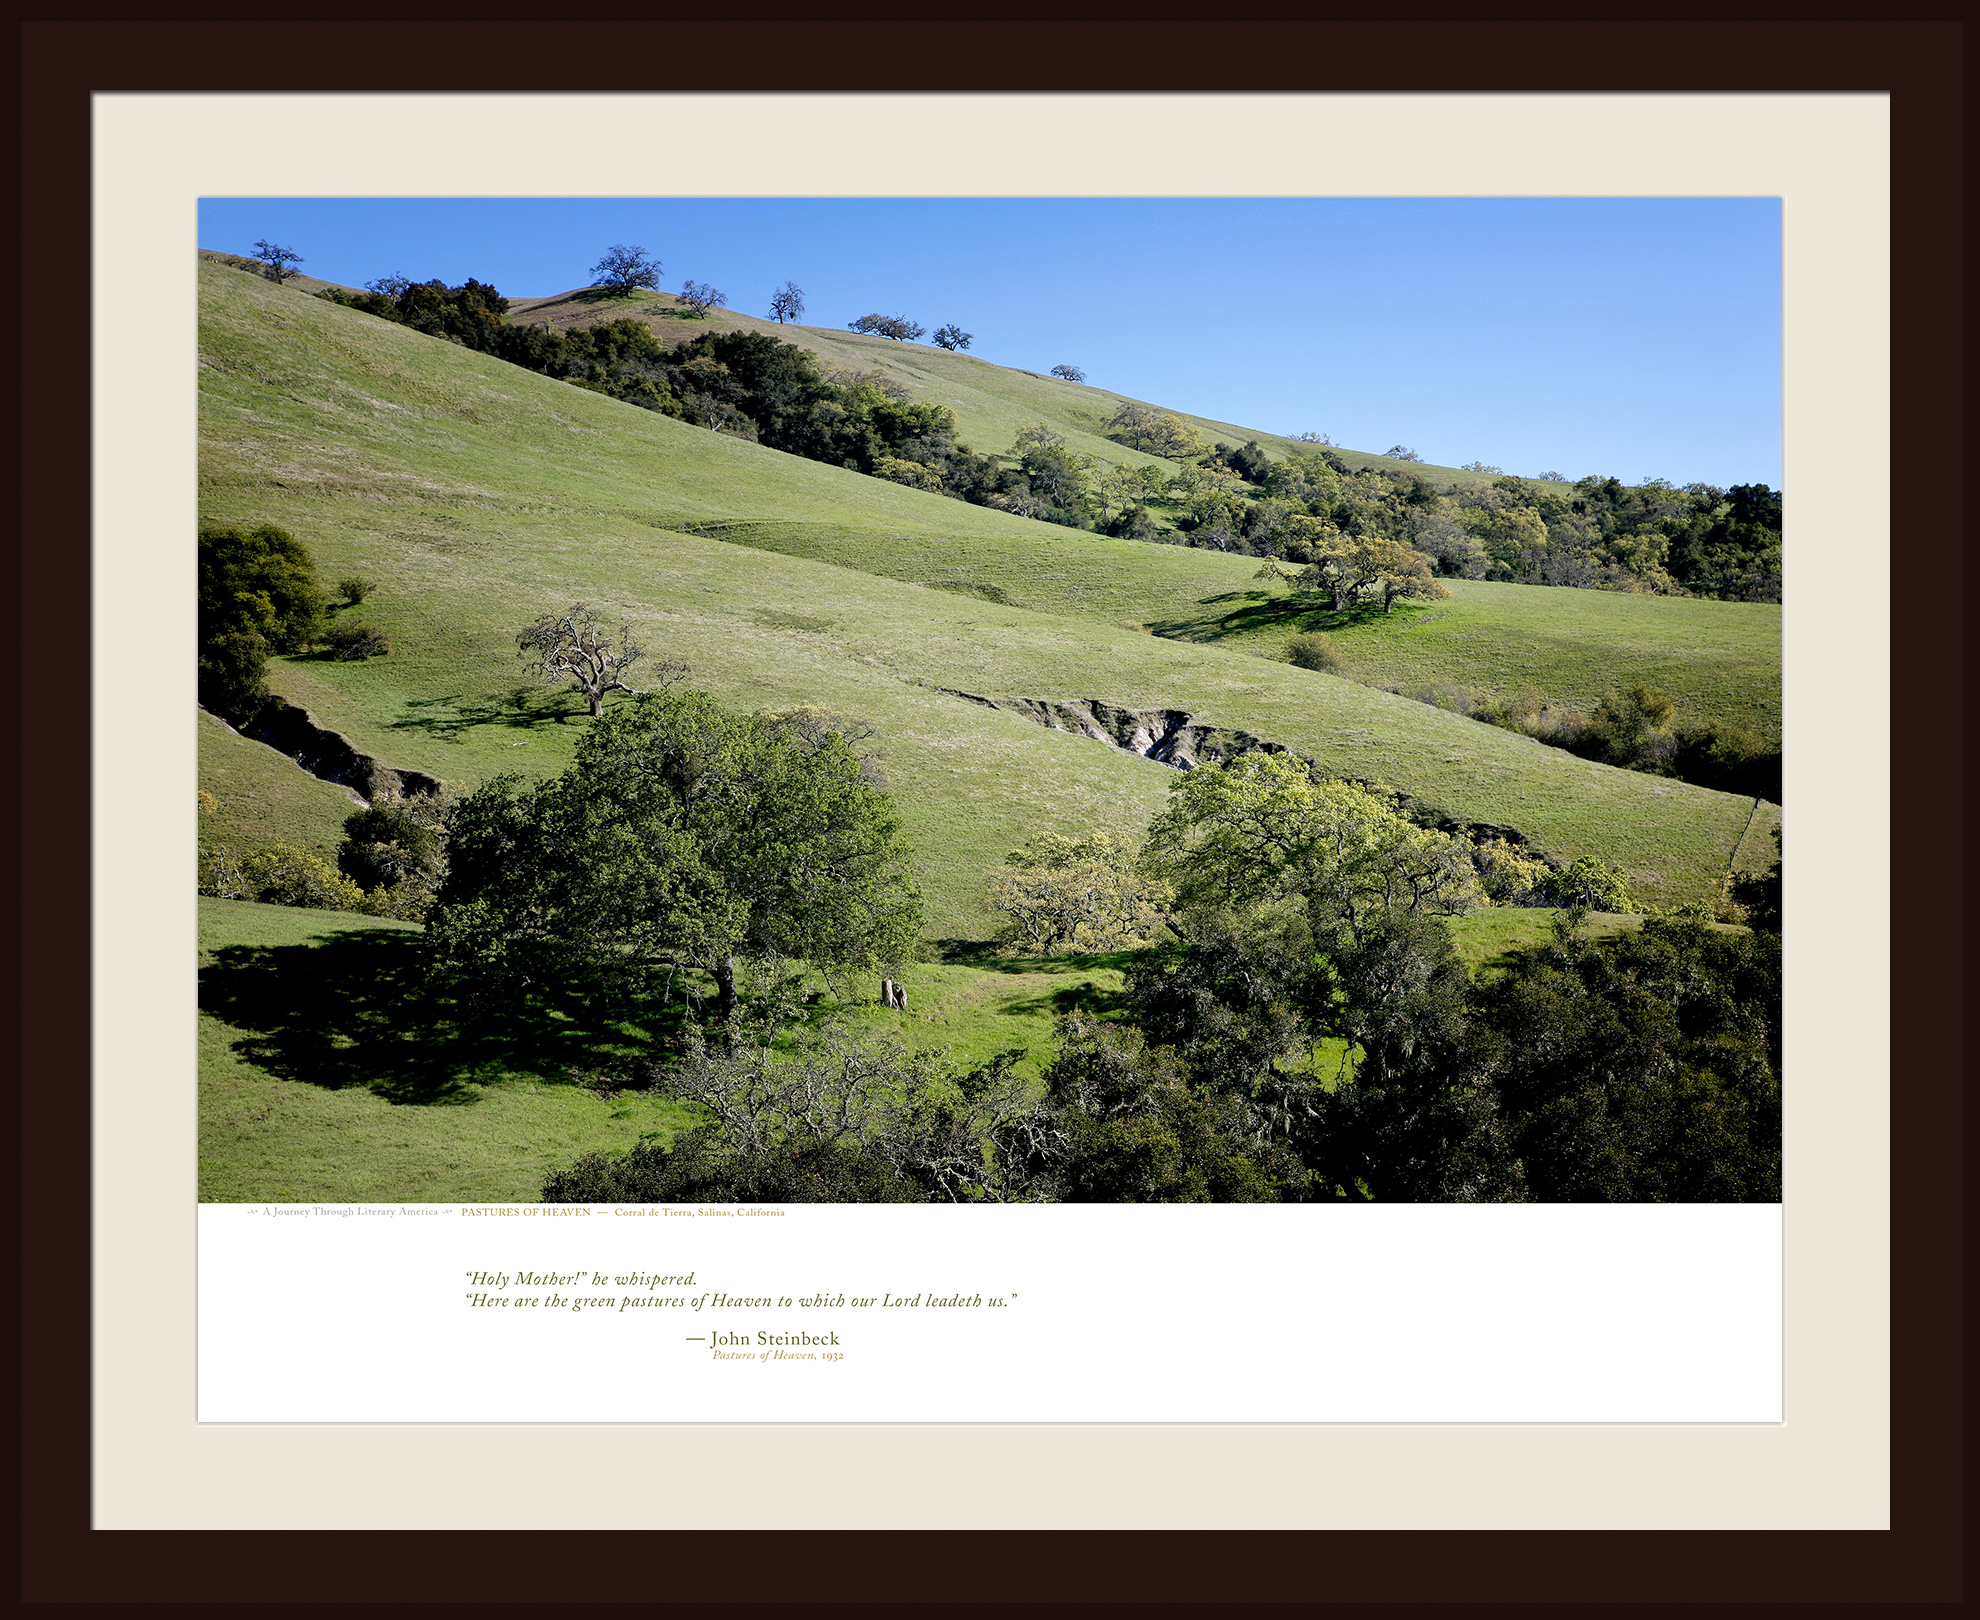 PASTURES OF HEAVEN — Corral de Tierra, Salinas, California